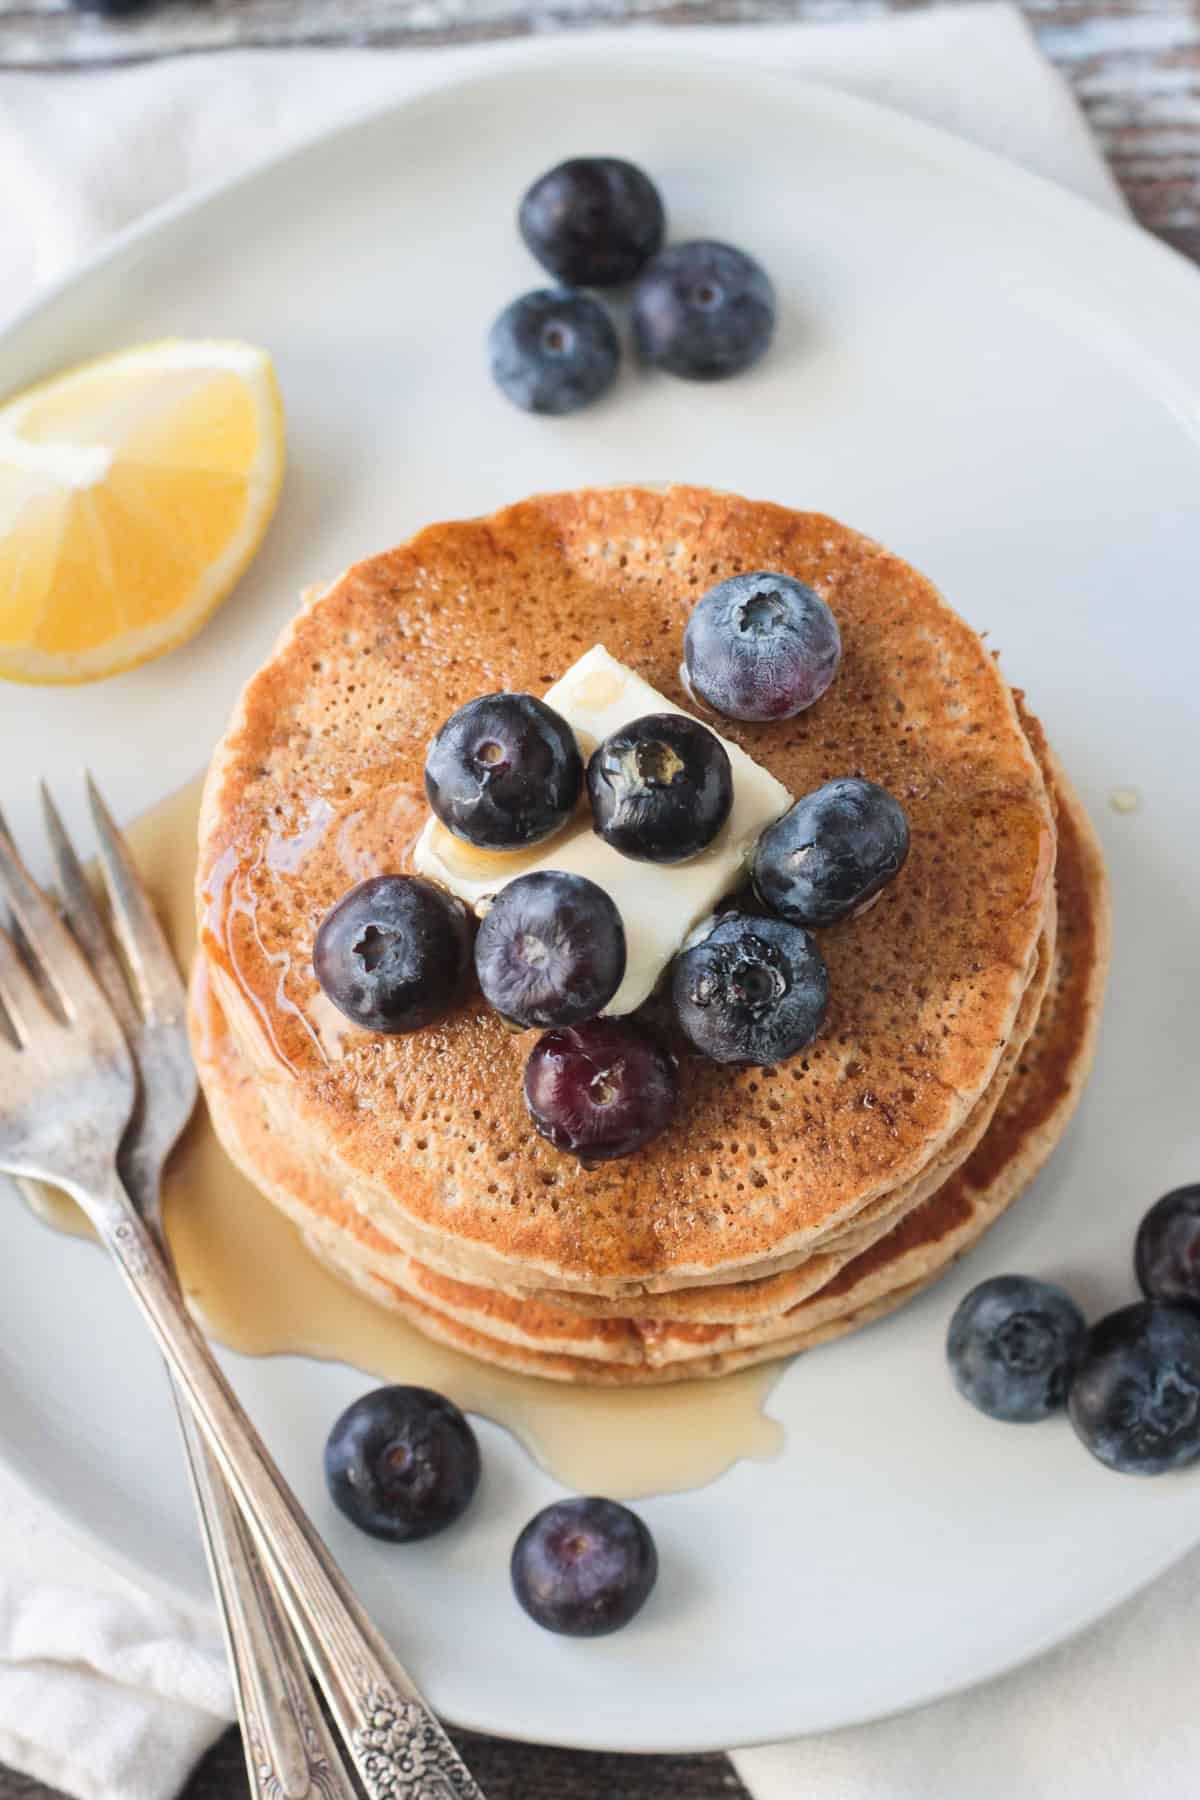 Overhead view of a stack of pancakes topped with a pat of butter and fresh blueberries.